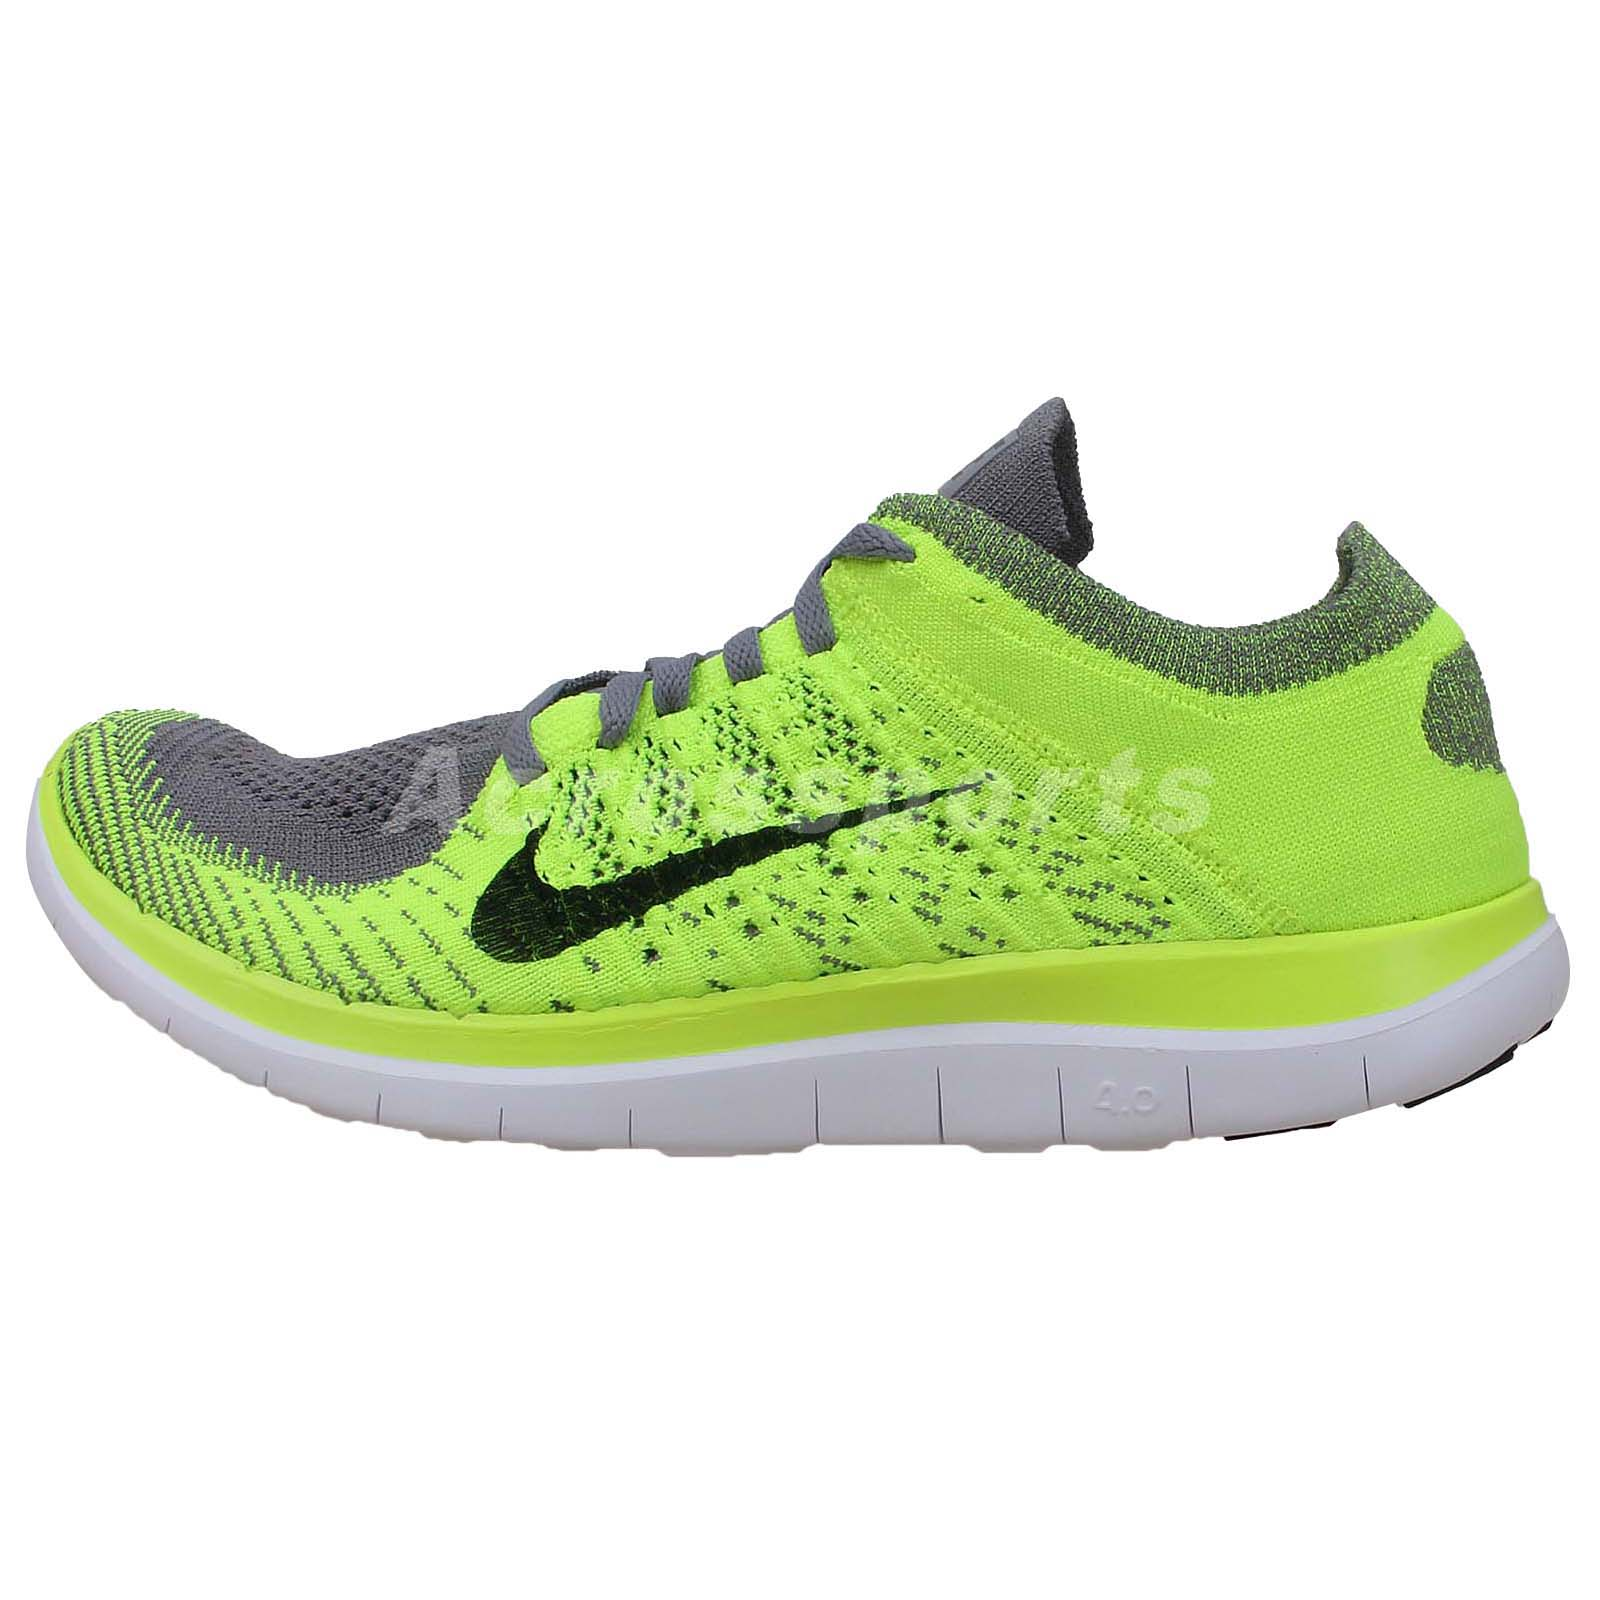 Nike Free Flyknit 4.0 Grey Volt Barefoot Running Shoes Run ...